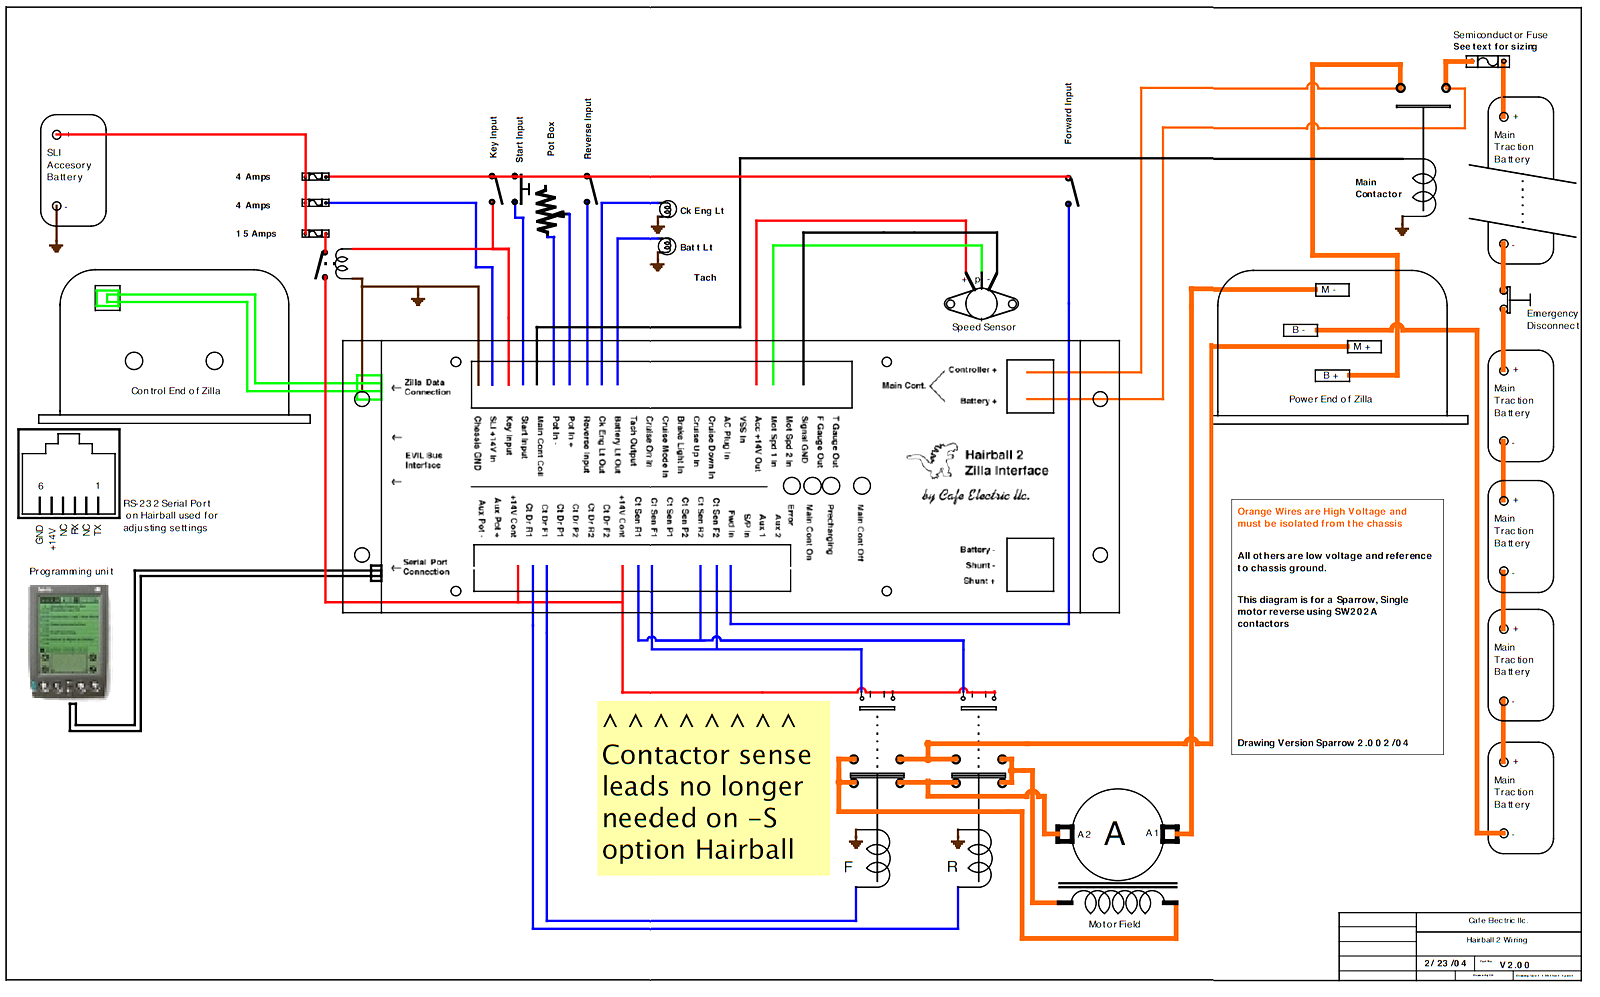 Home Cable Tv Wiring Diagram Vw Alternator Conversion Residential House Great Installation Of Diagrams Library Rh 2 Codingcommunity De Electrical Basics